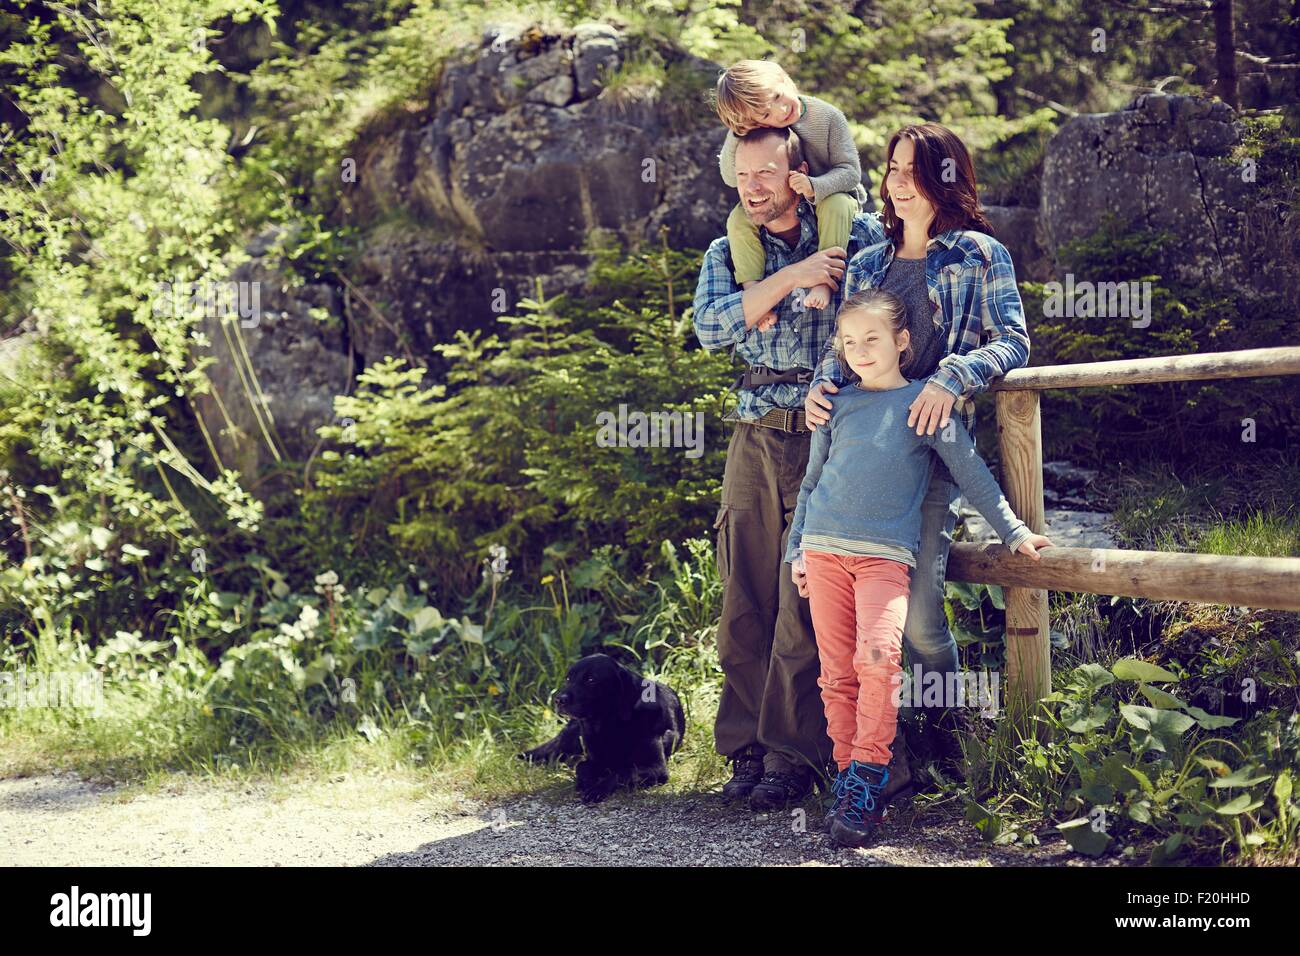 Portrait of family, in forest, standing by fence - Stock Image